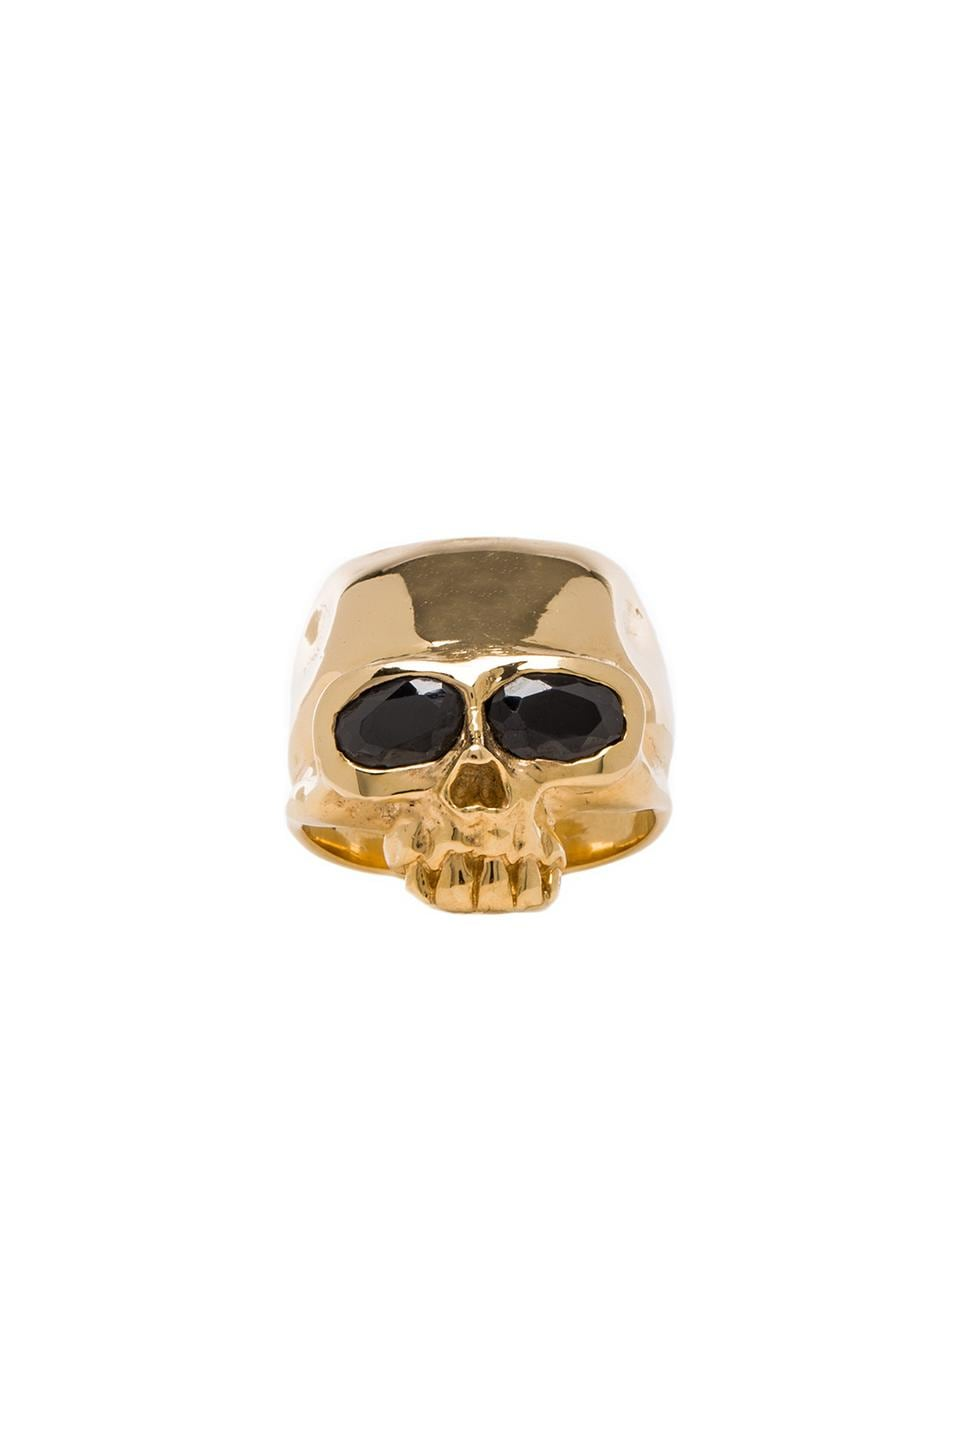 joolz by Martha Calvo Skull Head Ring in Gold & Black